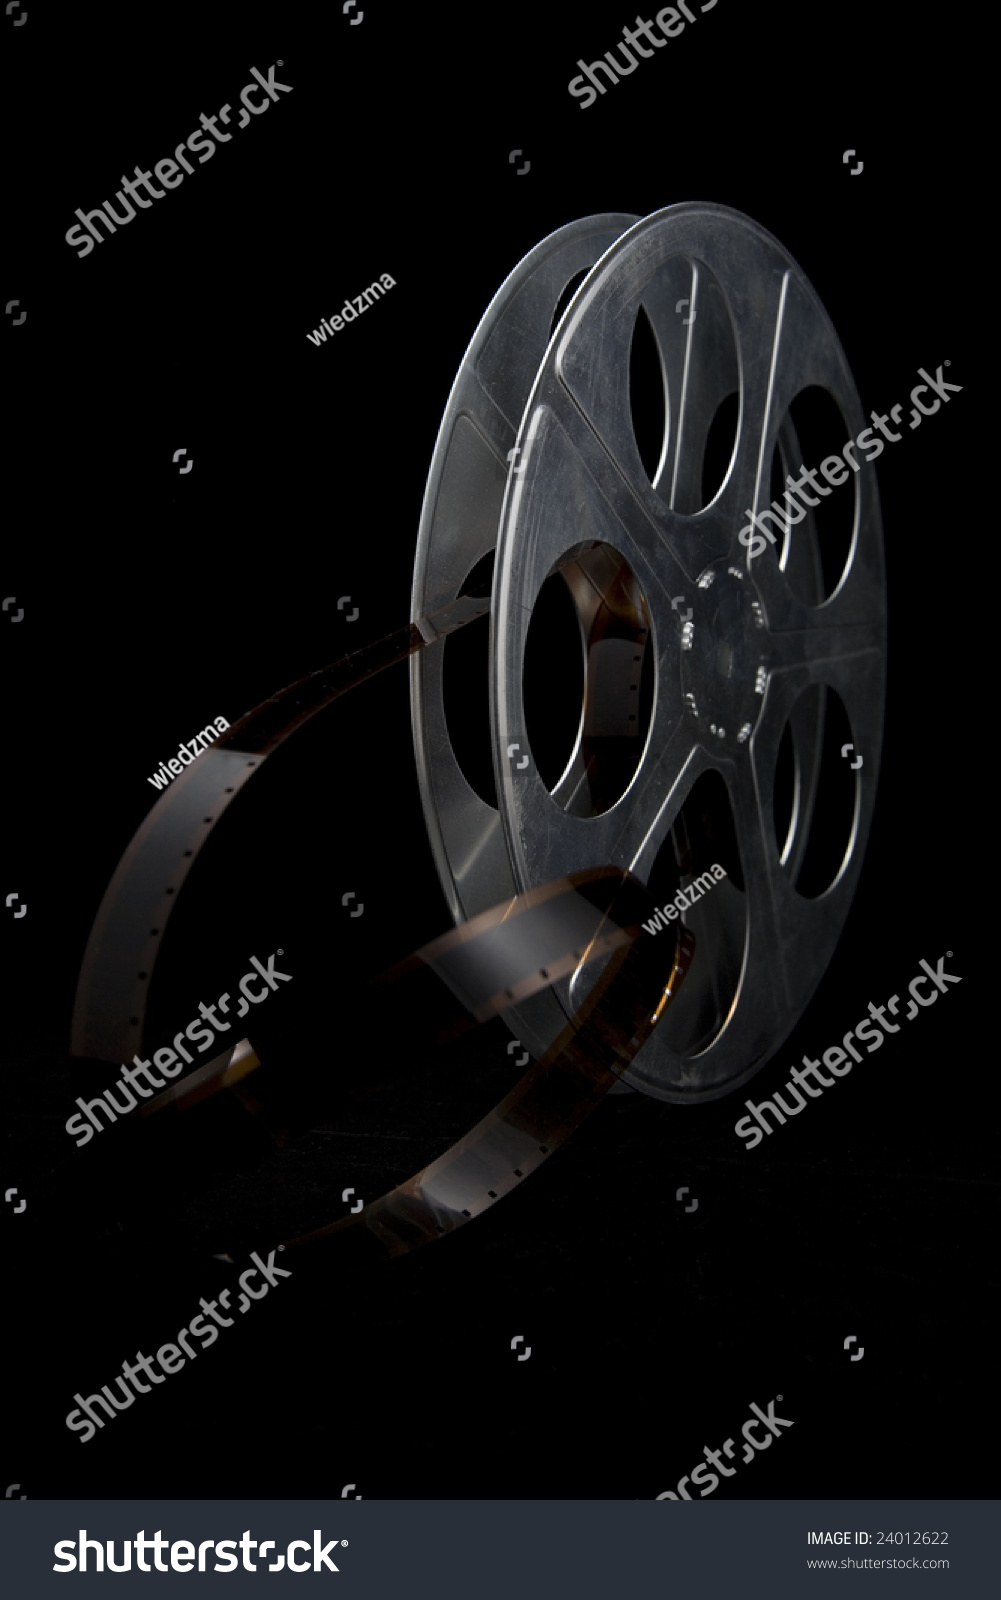 Film Reel On Black Background Stock Photo 24012622 ...